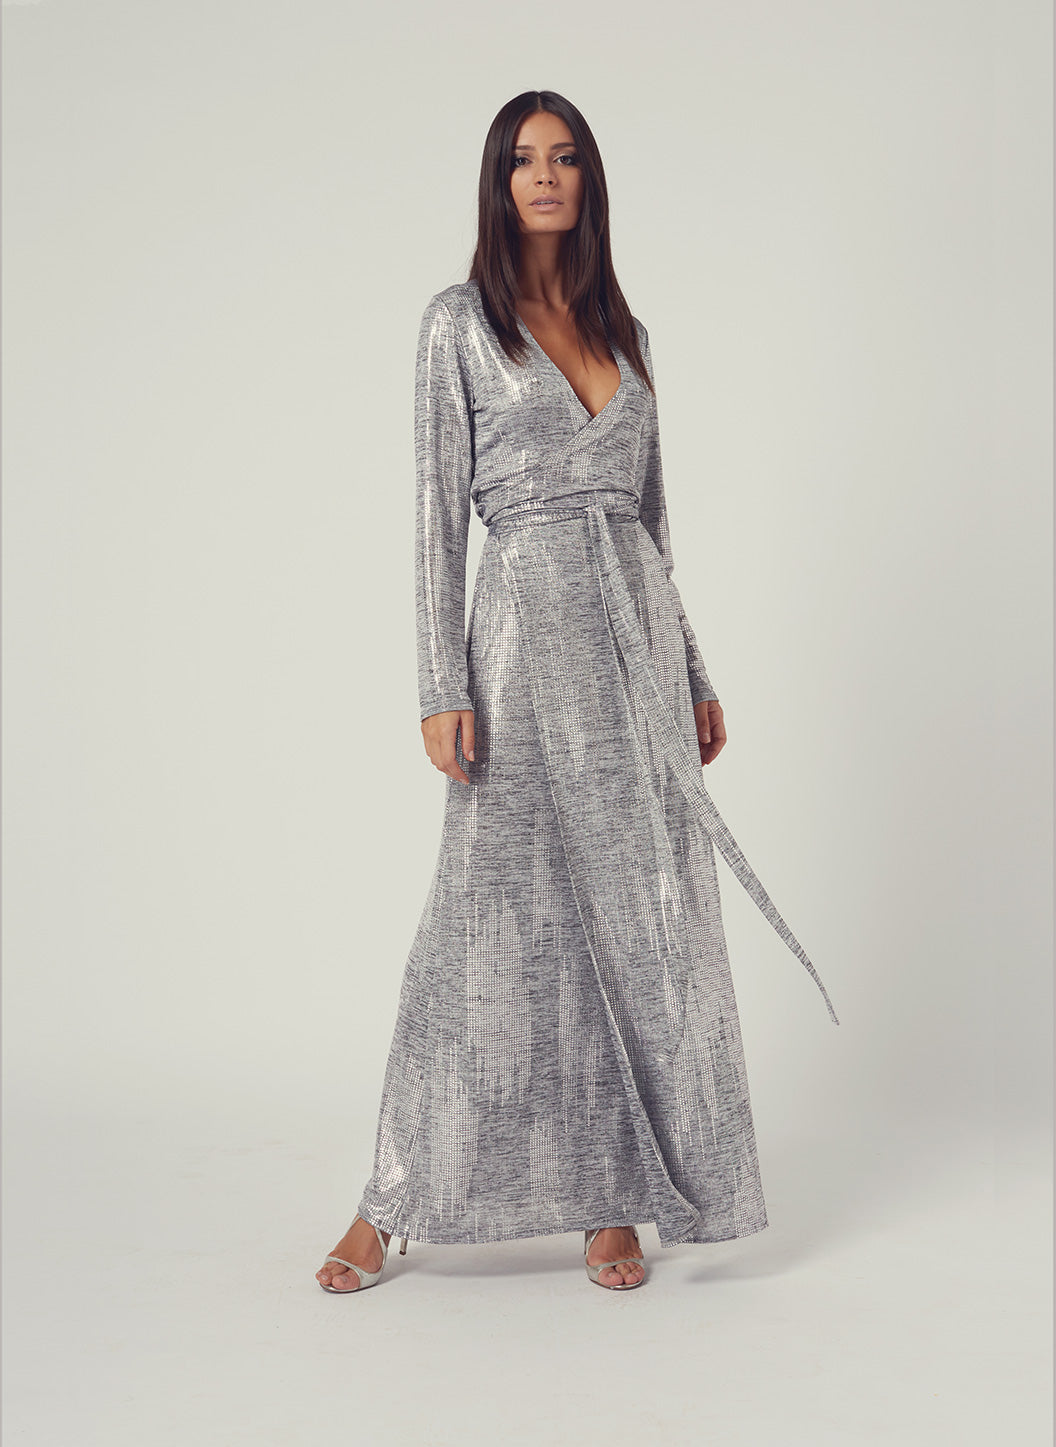 Look 3 Wrap Maxi Dress Silver - Melissa Odabash Anniversary Collection